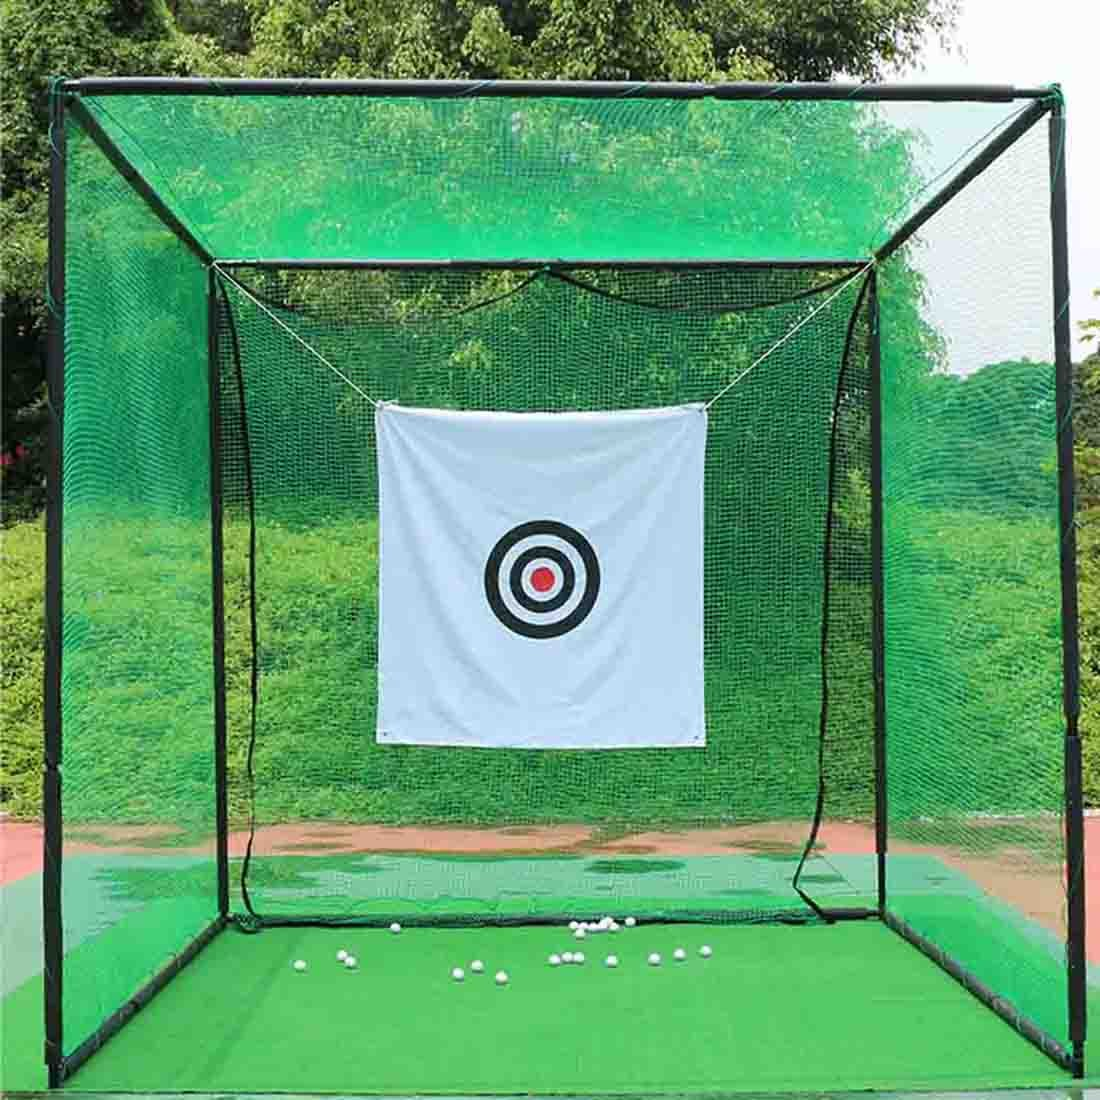 Heavy Duty Golf Hitting Net Cage by HMX,Allows High Velocity Strong Impact